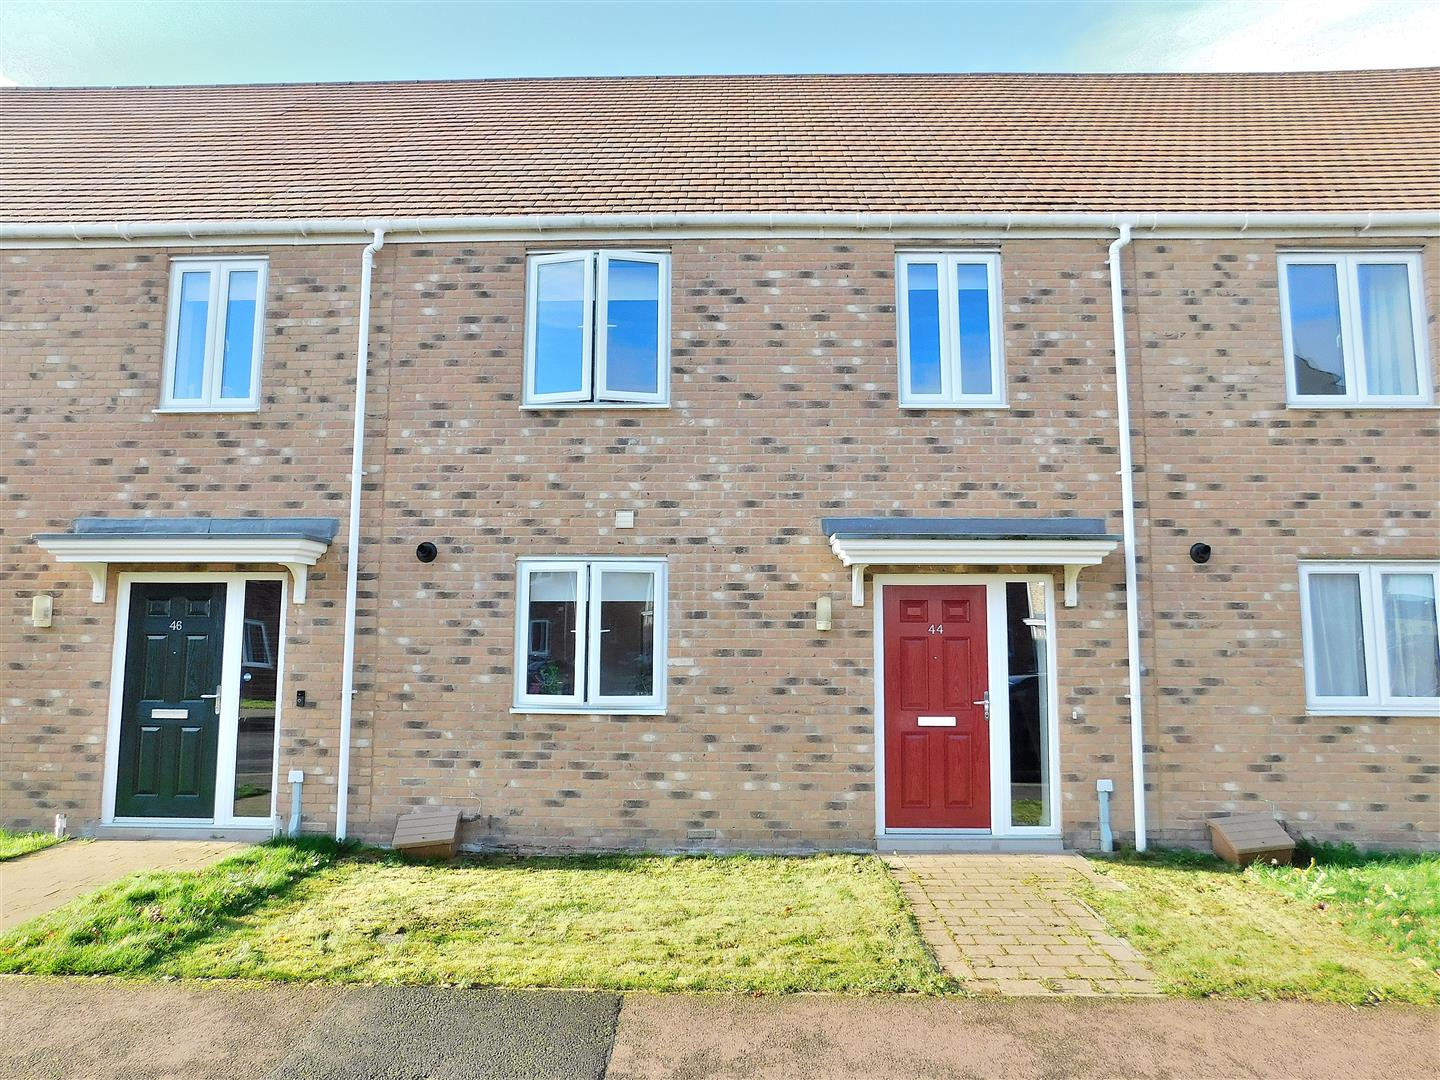 3 bed terraced house for sale in King's Lynn, PE30 5DH, PE30